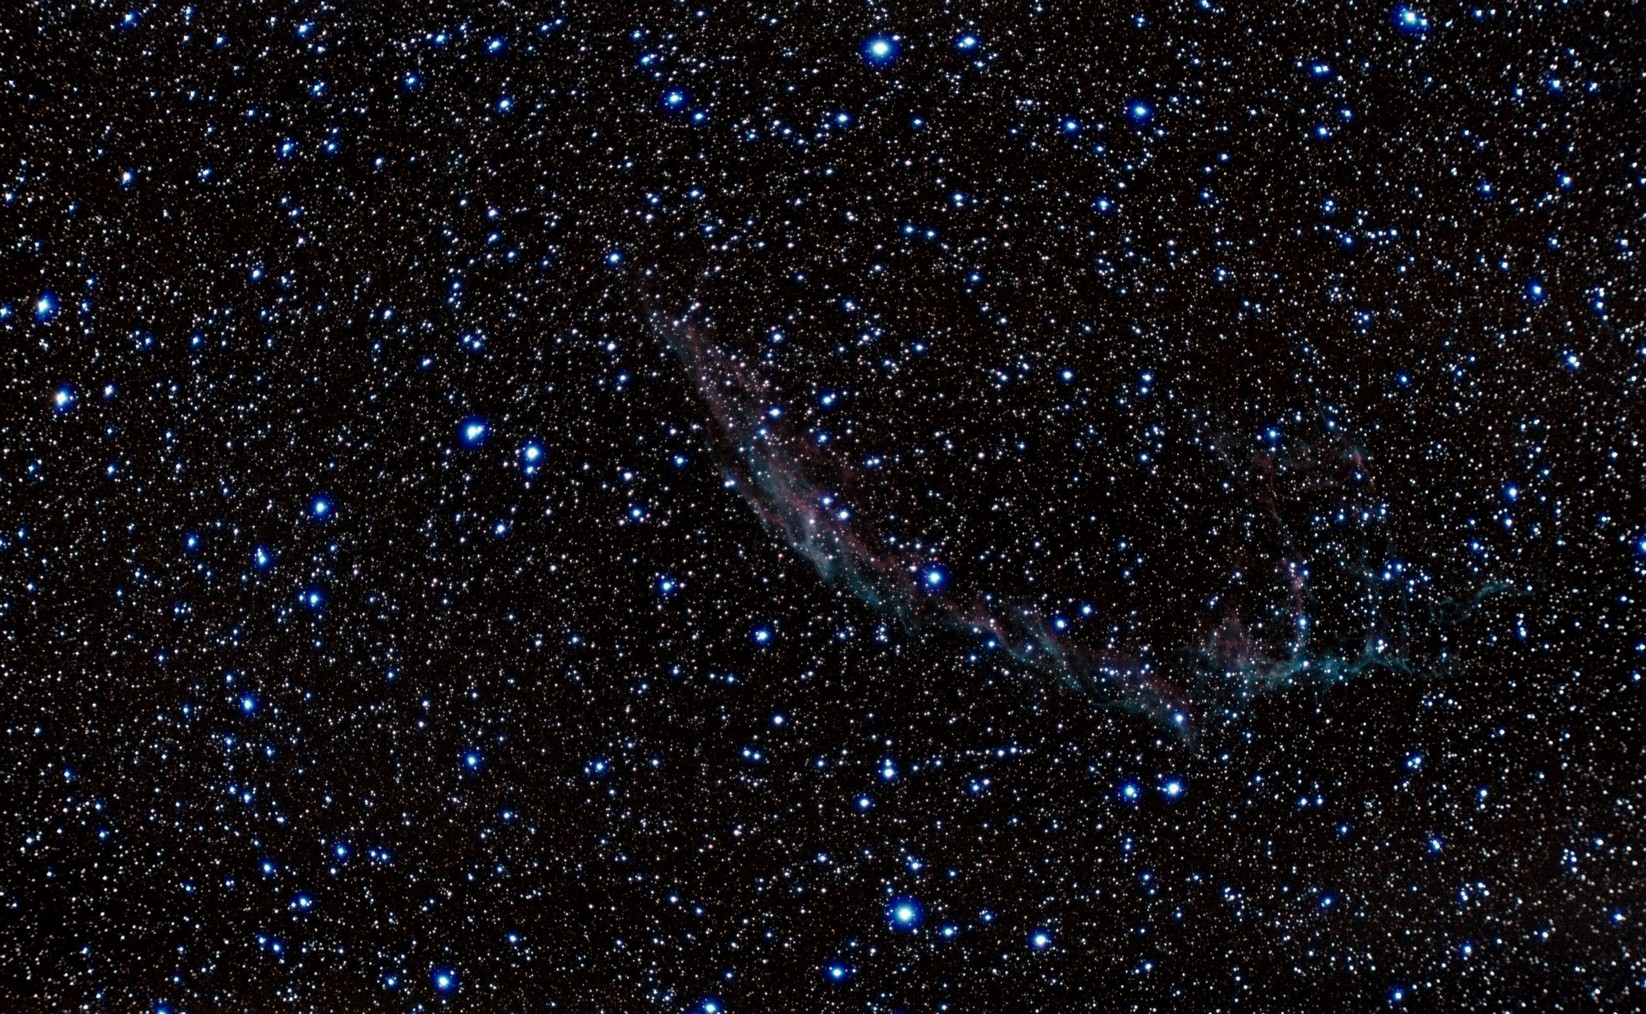 NGC6992 dentelle 20200524 L120 600 71x60s 1600iso sortie siril photofiltre 02